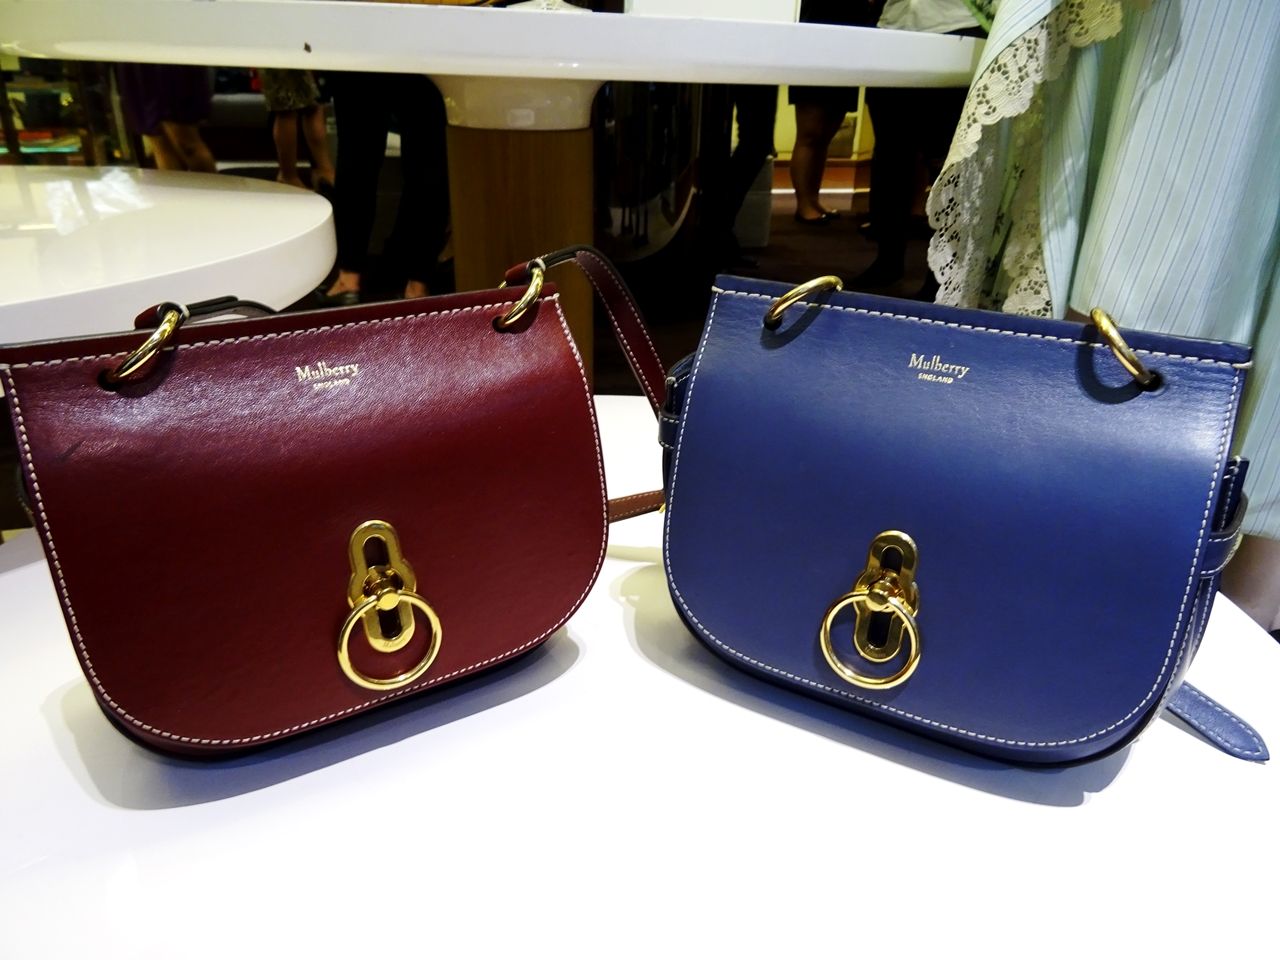 794928d2ac56 ... best price small amberley mulberry bag aw17 blue oxblood e6b94 48f09